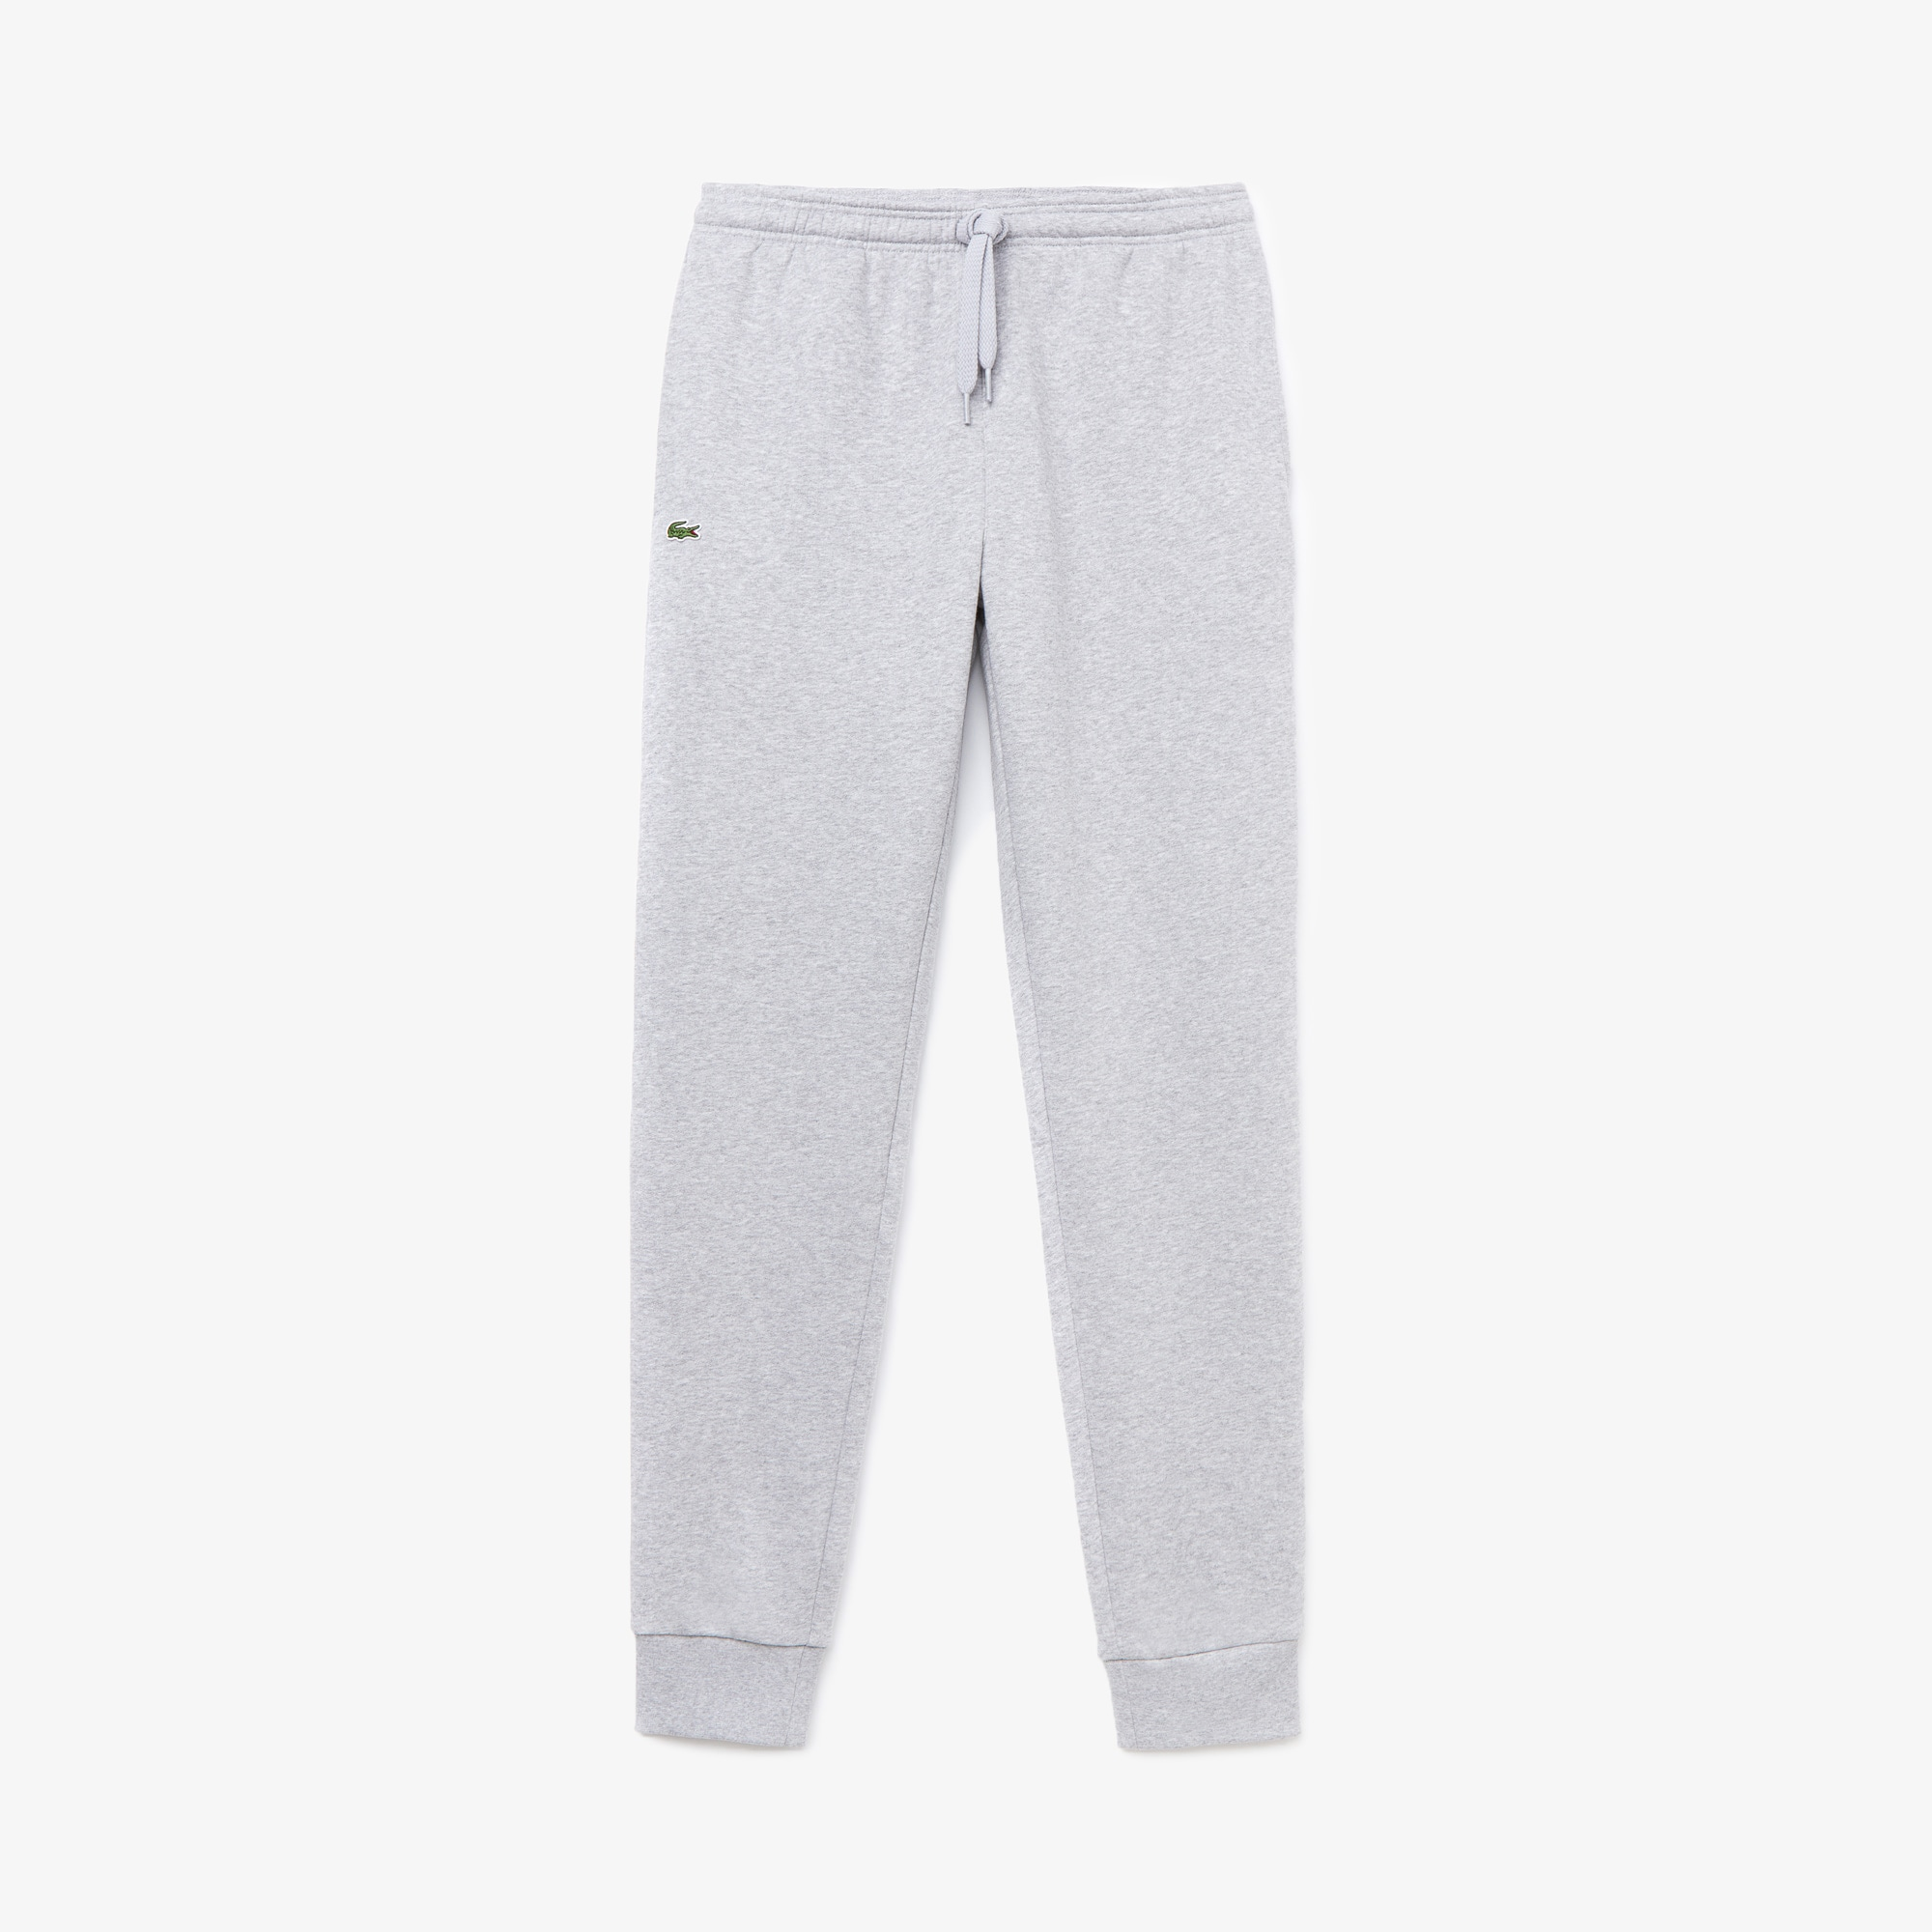 라코스테 스포츠 스웻 팬츠 Lacoste Mens SPORT Cotton Fleece Tennis Sweatpants,silver grey chine